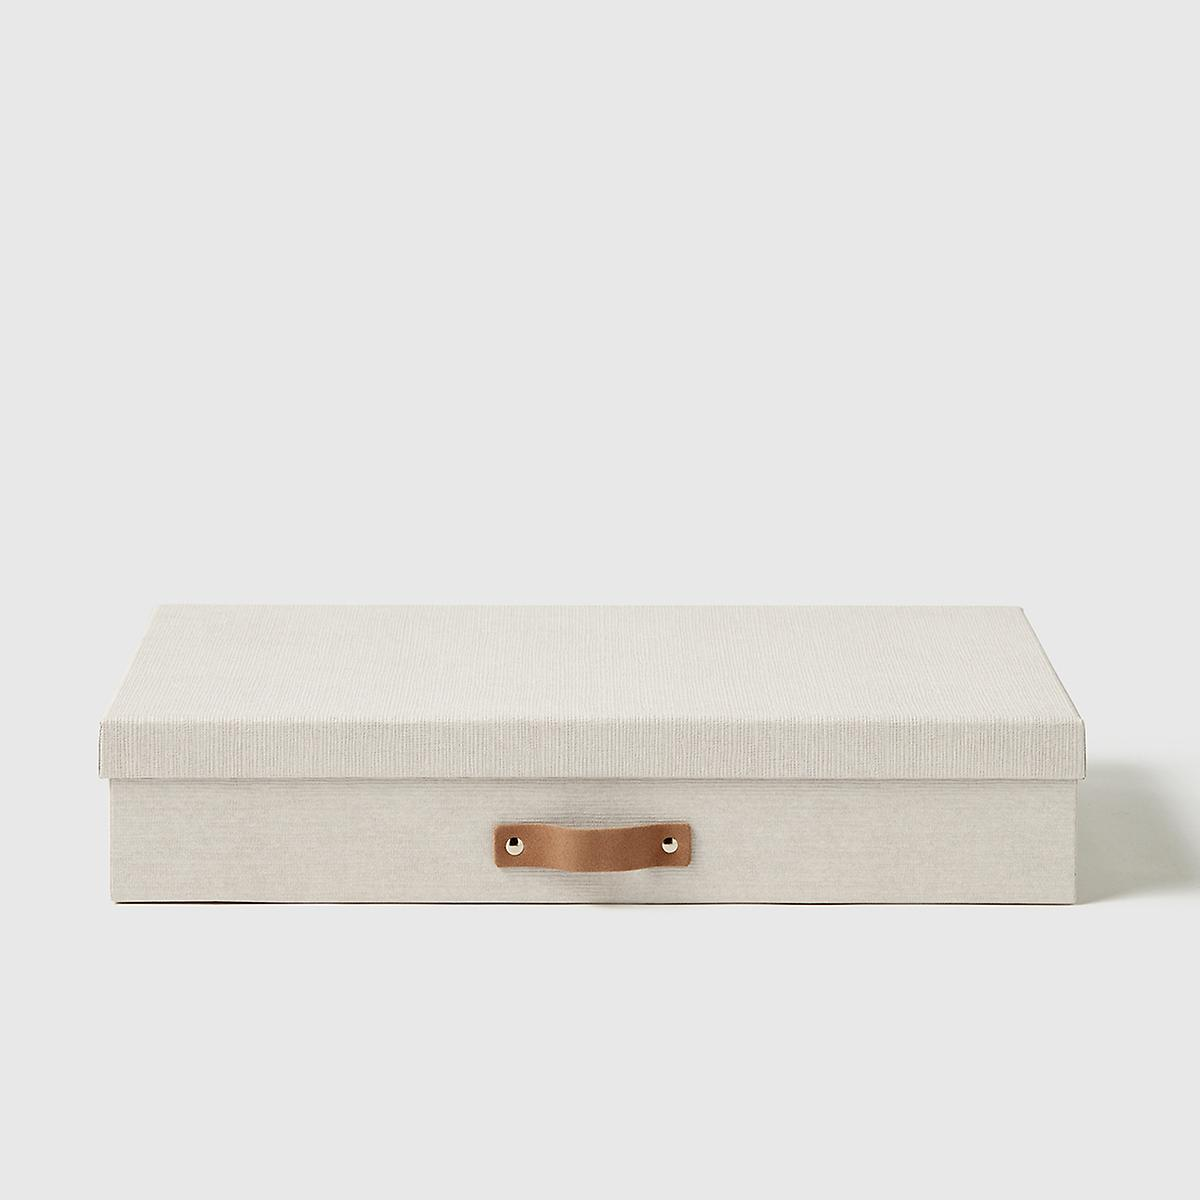 Marie Kondo Calm Document Box